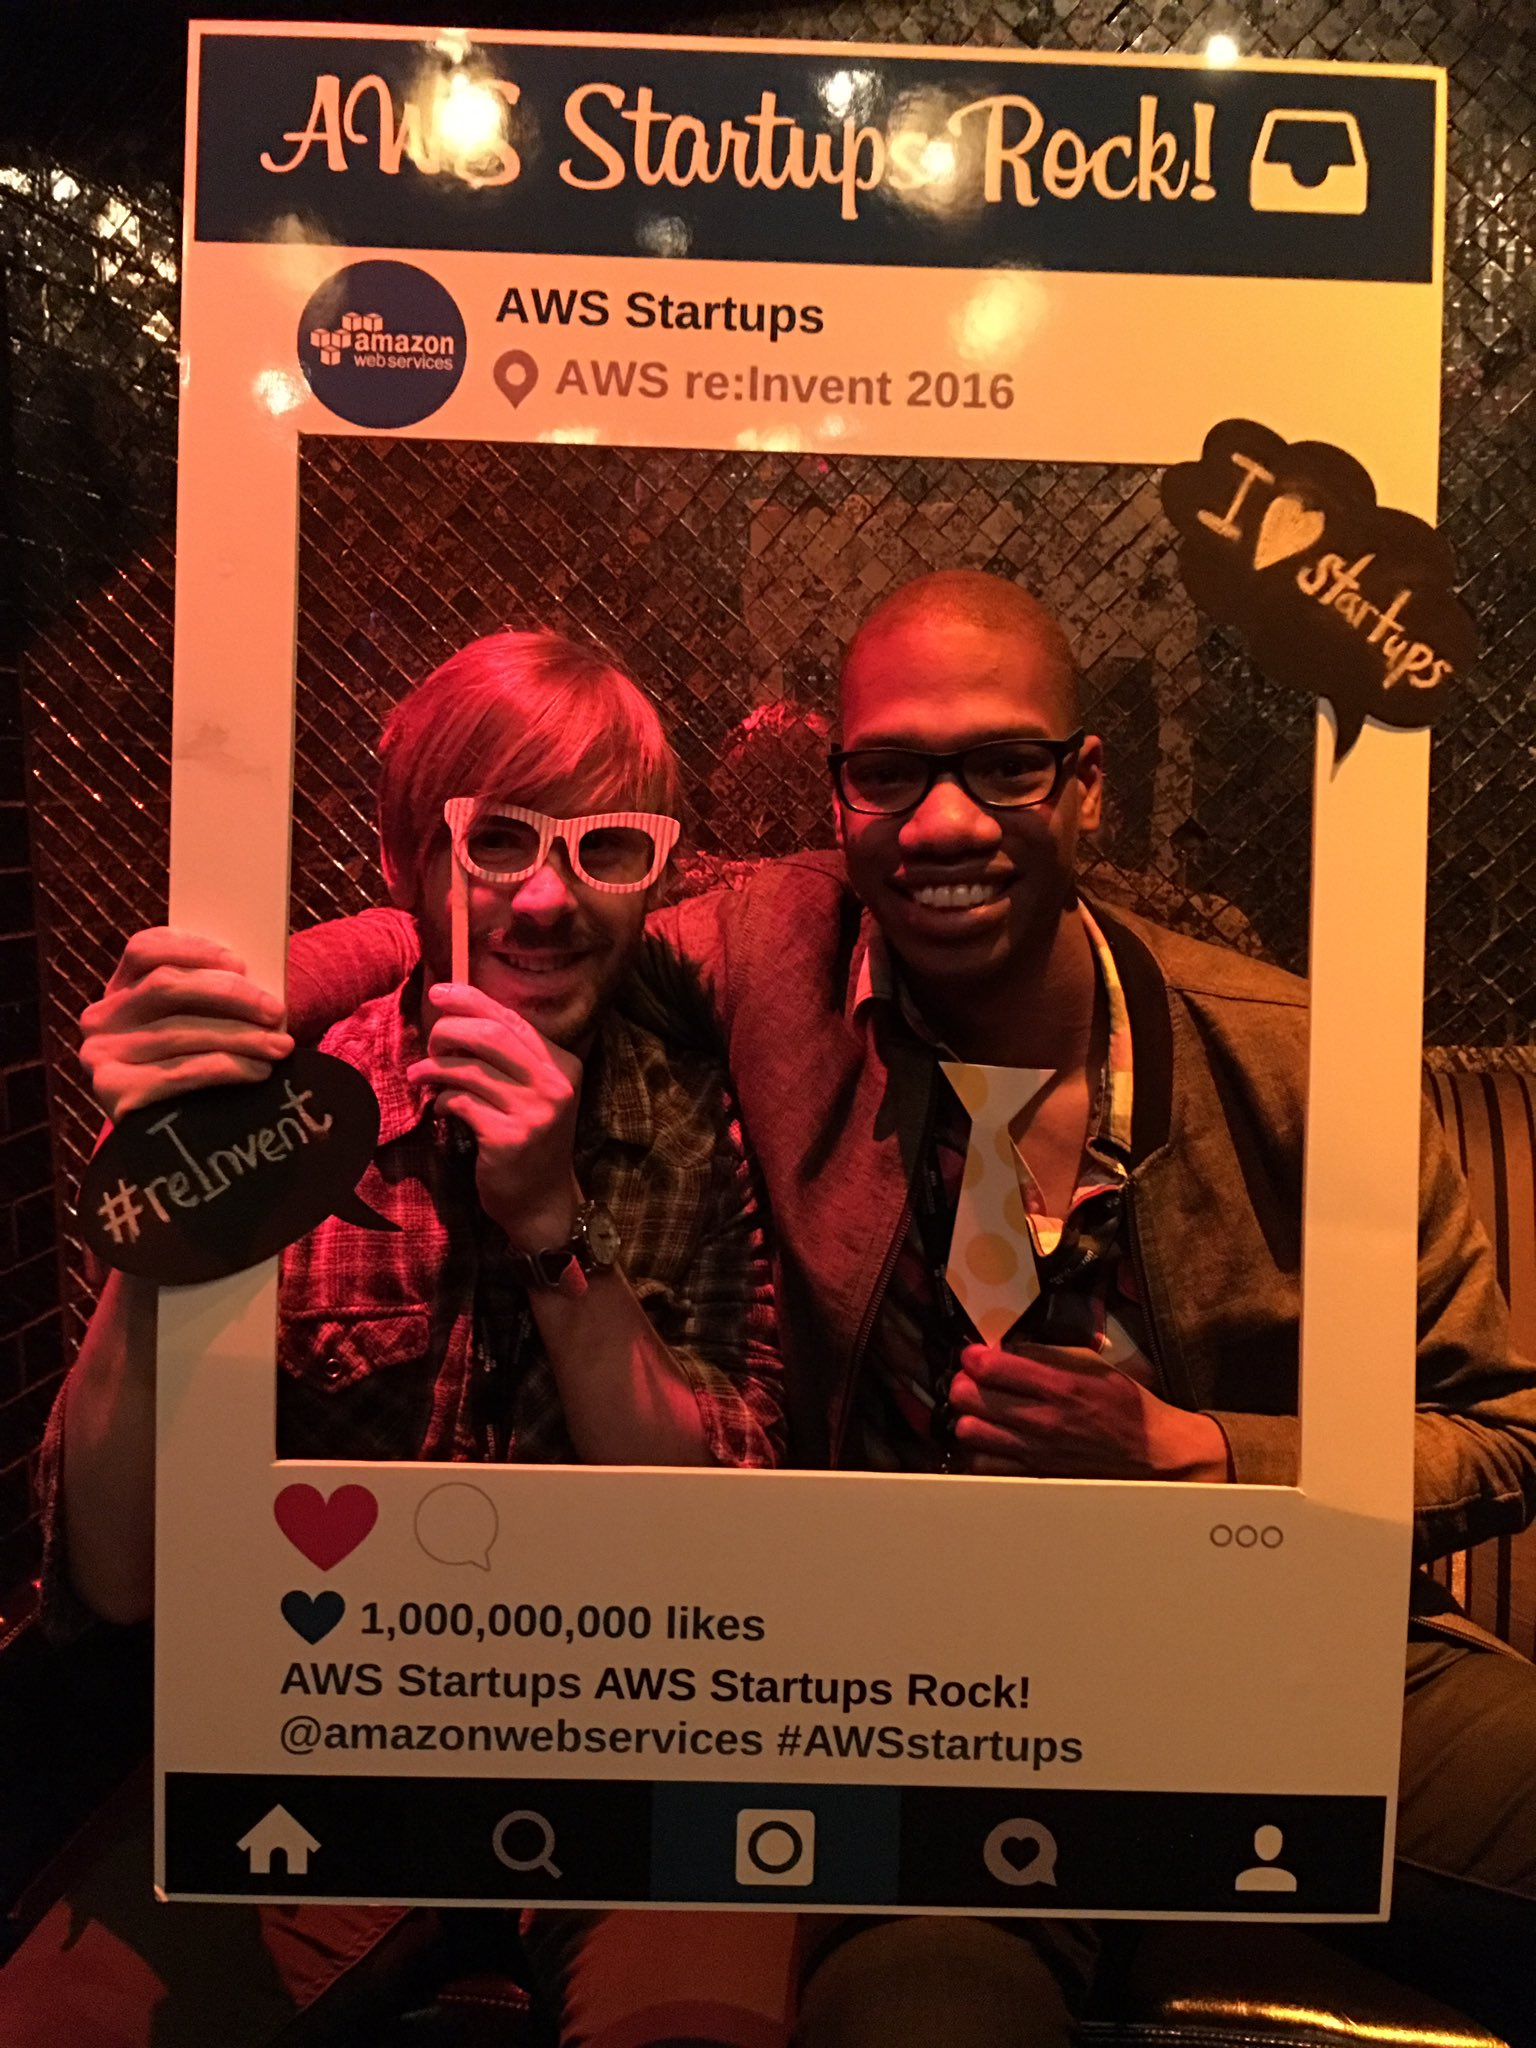 AWS Startups Mobile Photobooth reInvent 2016